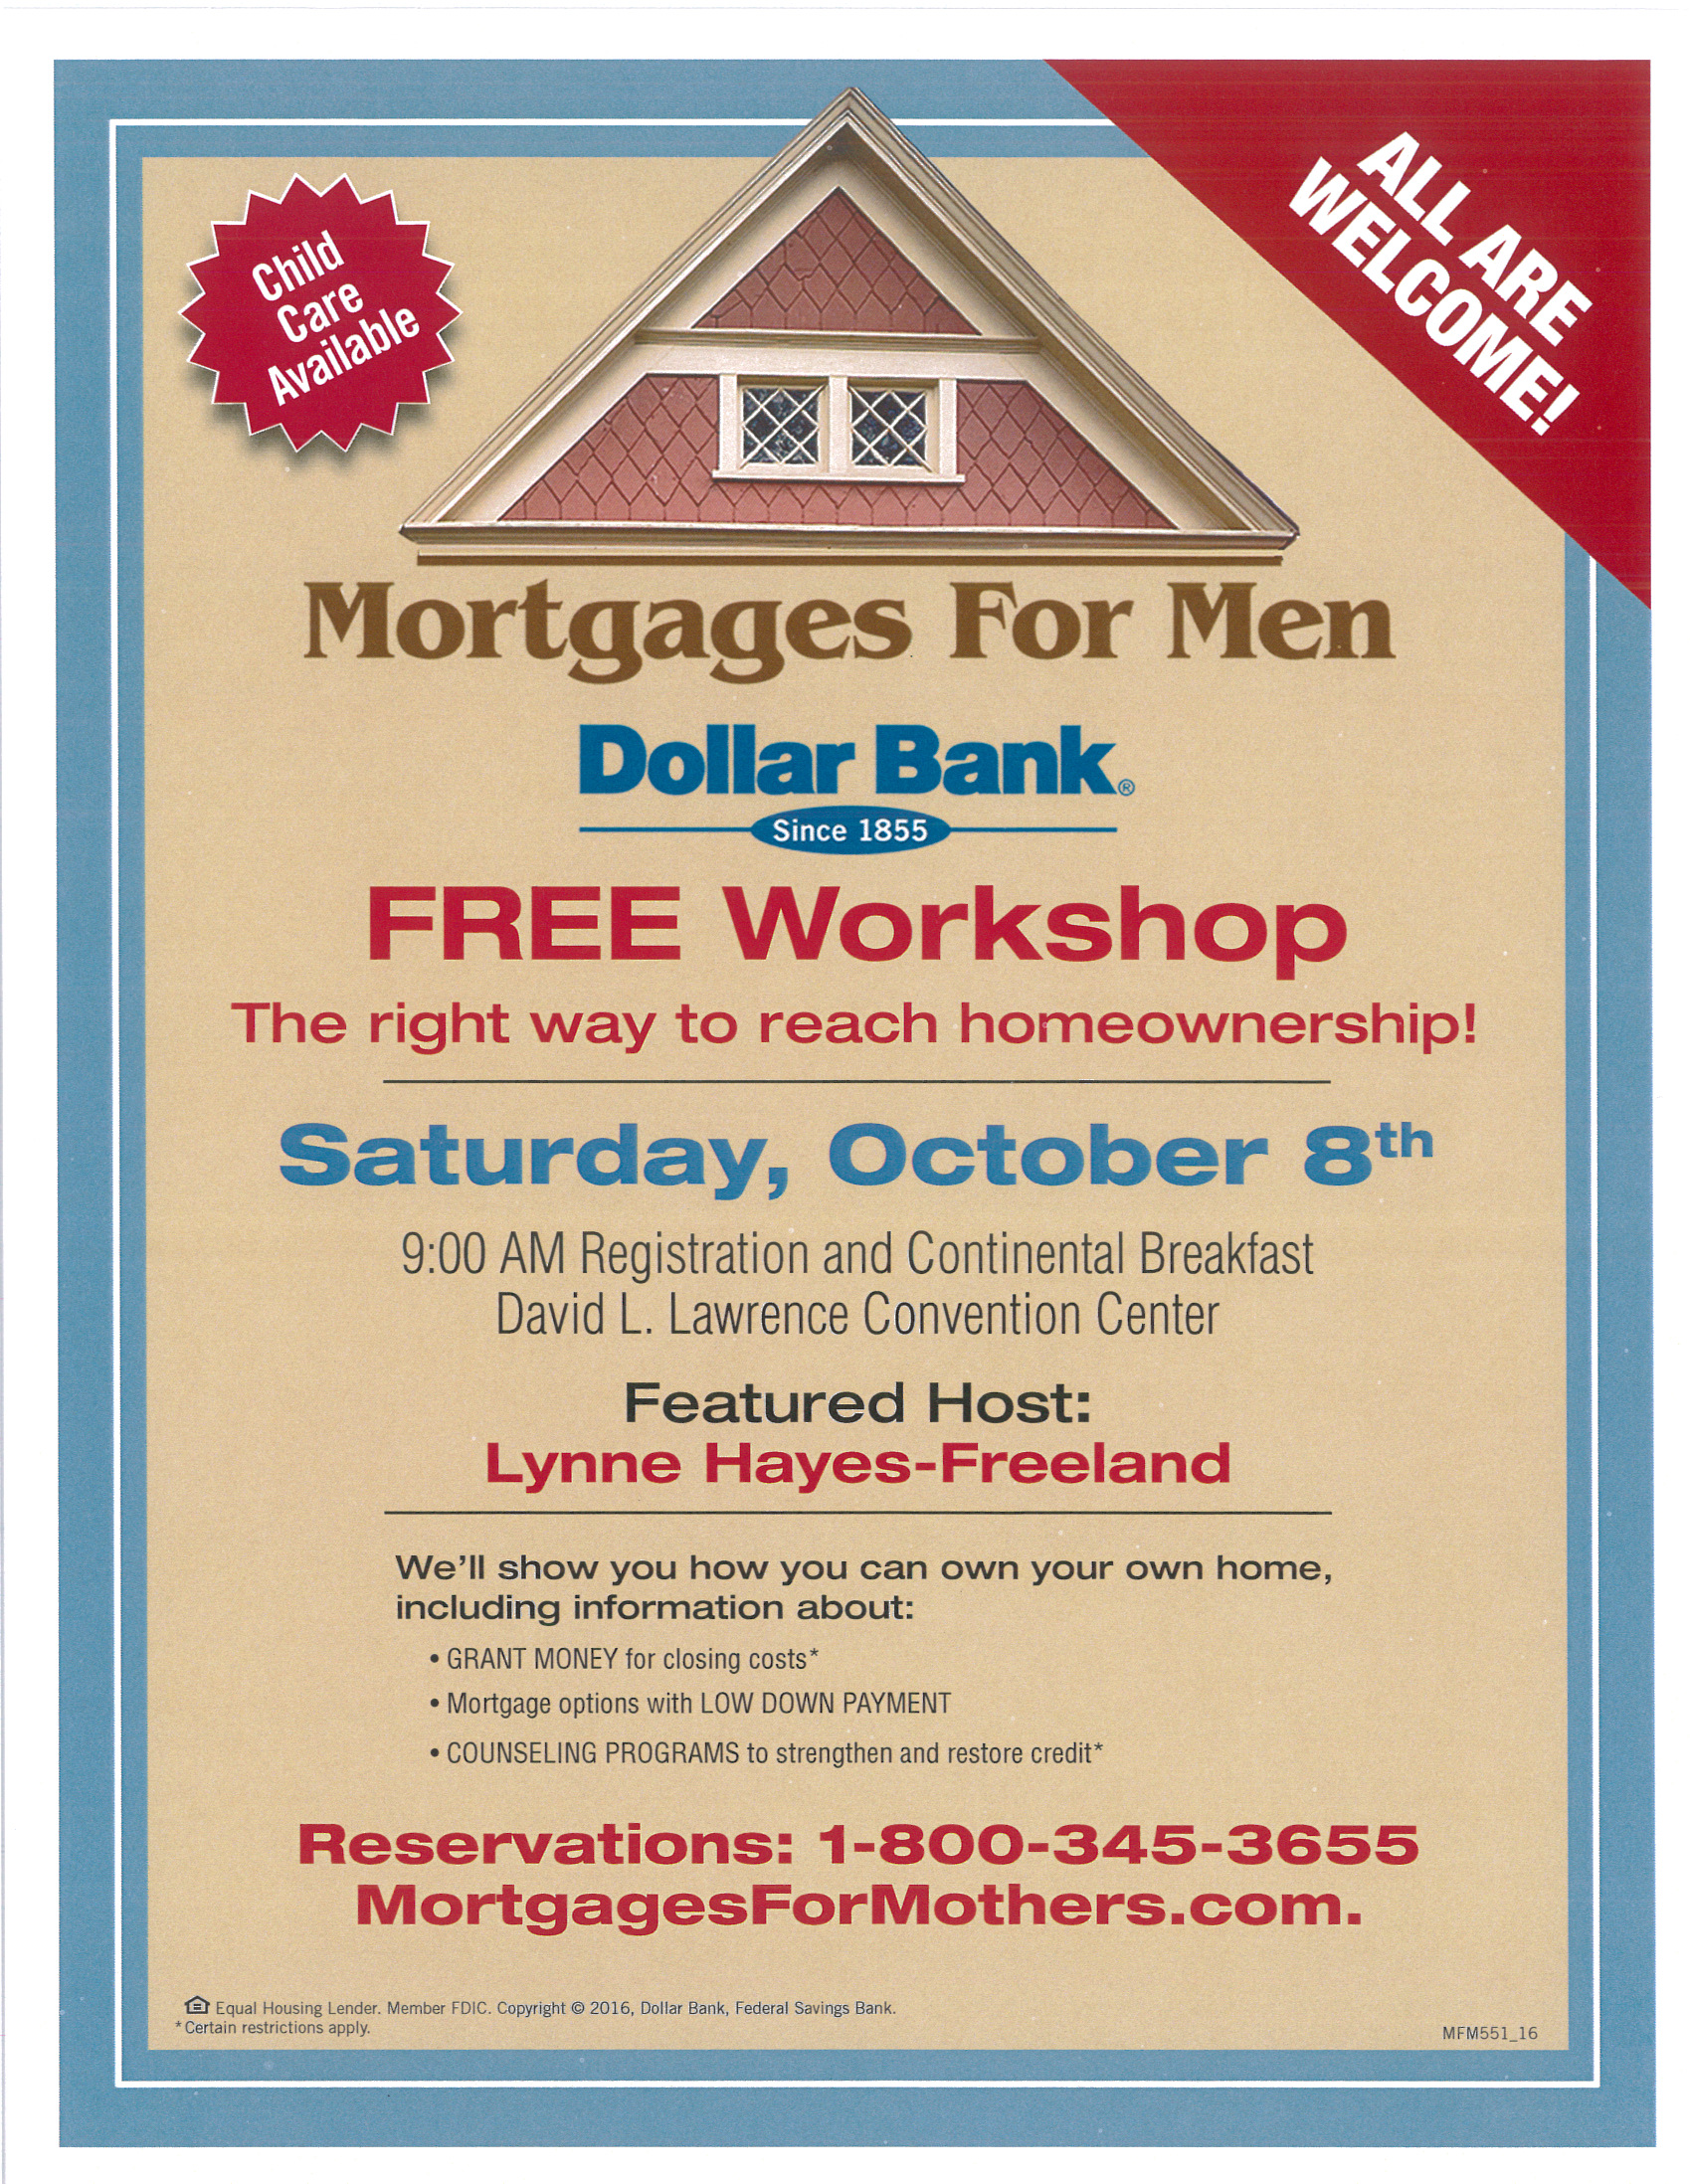 Mortgages for Men presented by Dollar Bank -